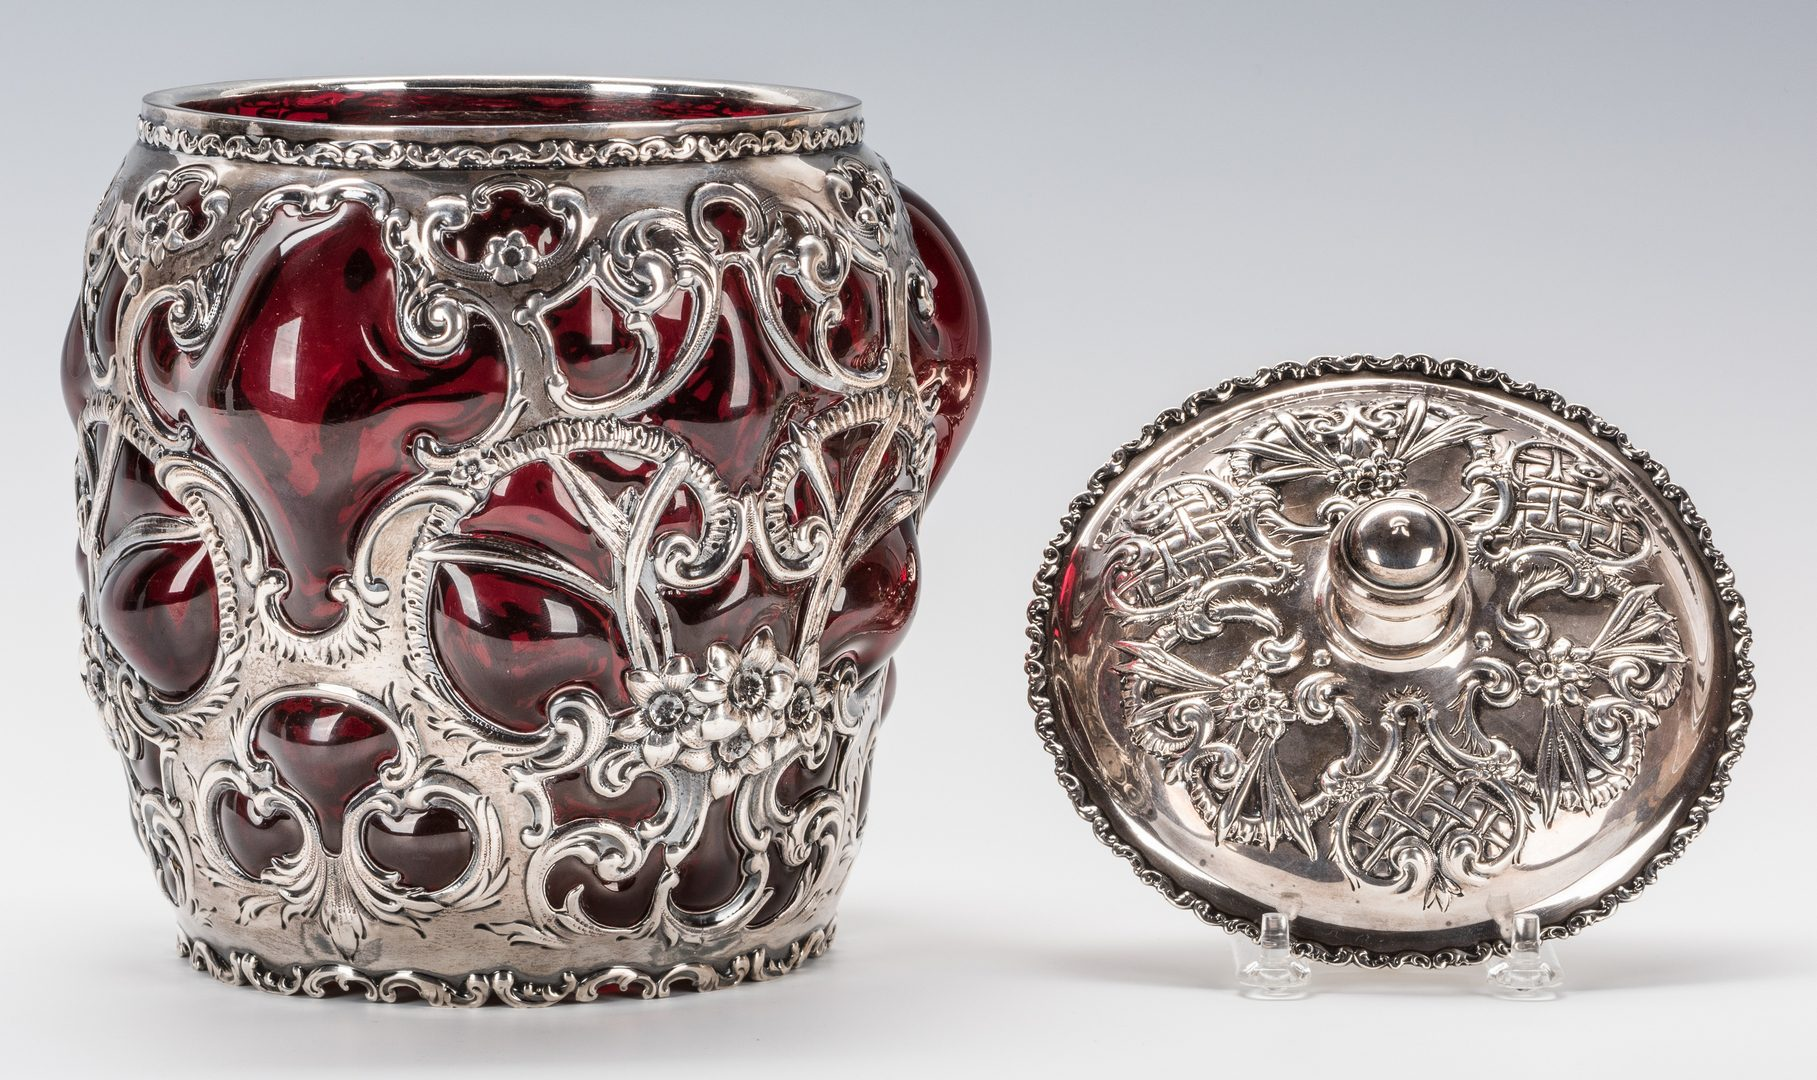 Lot 62: Whiting Sterling Overlay Humidor or Biscuit Jar with Red Art Glass